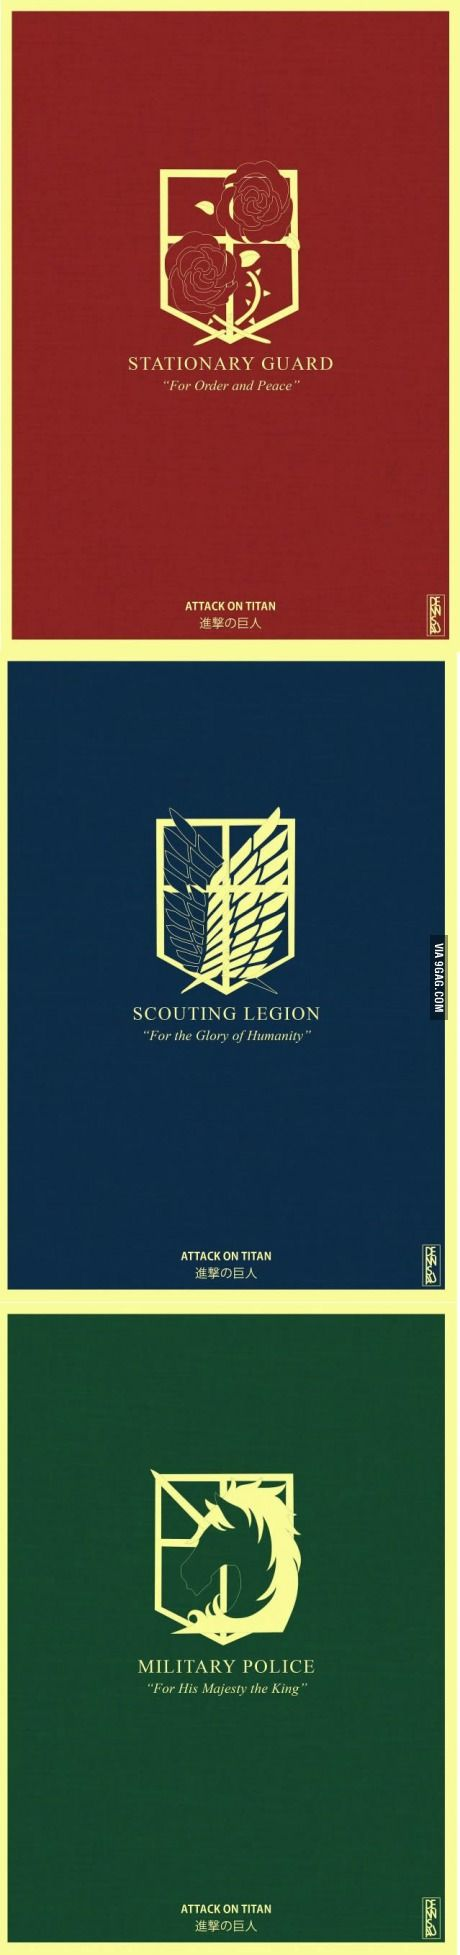 What would you choose? I would choose scouting legion for the glory of humanity